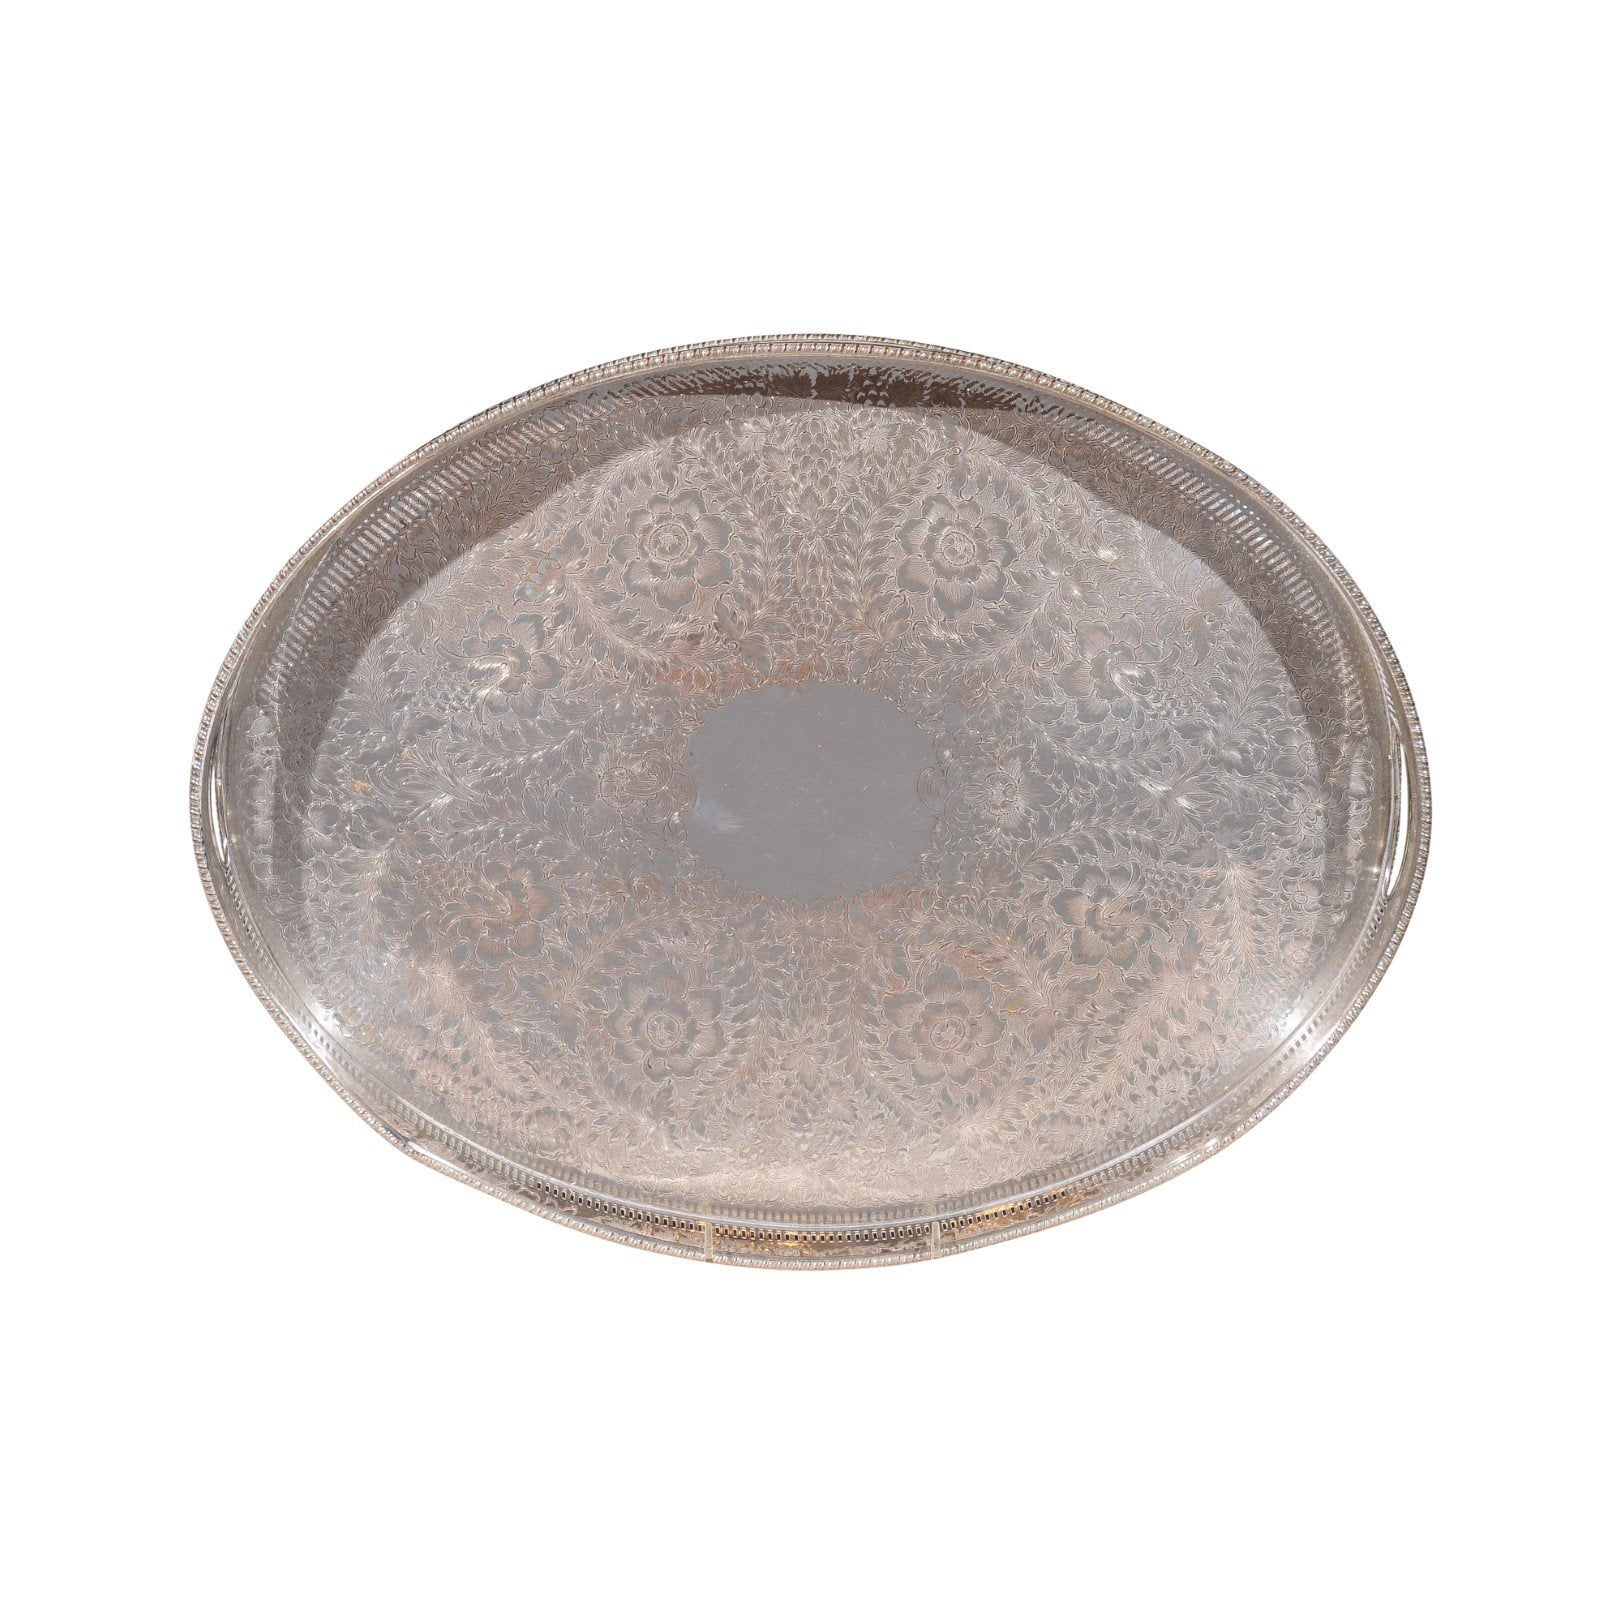 English Edwardian Period Silver Plated Tray with Floral Motifs and Petite Feet